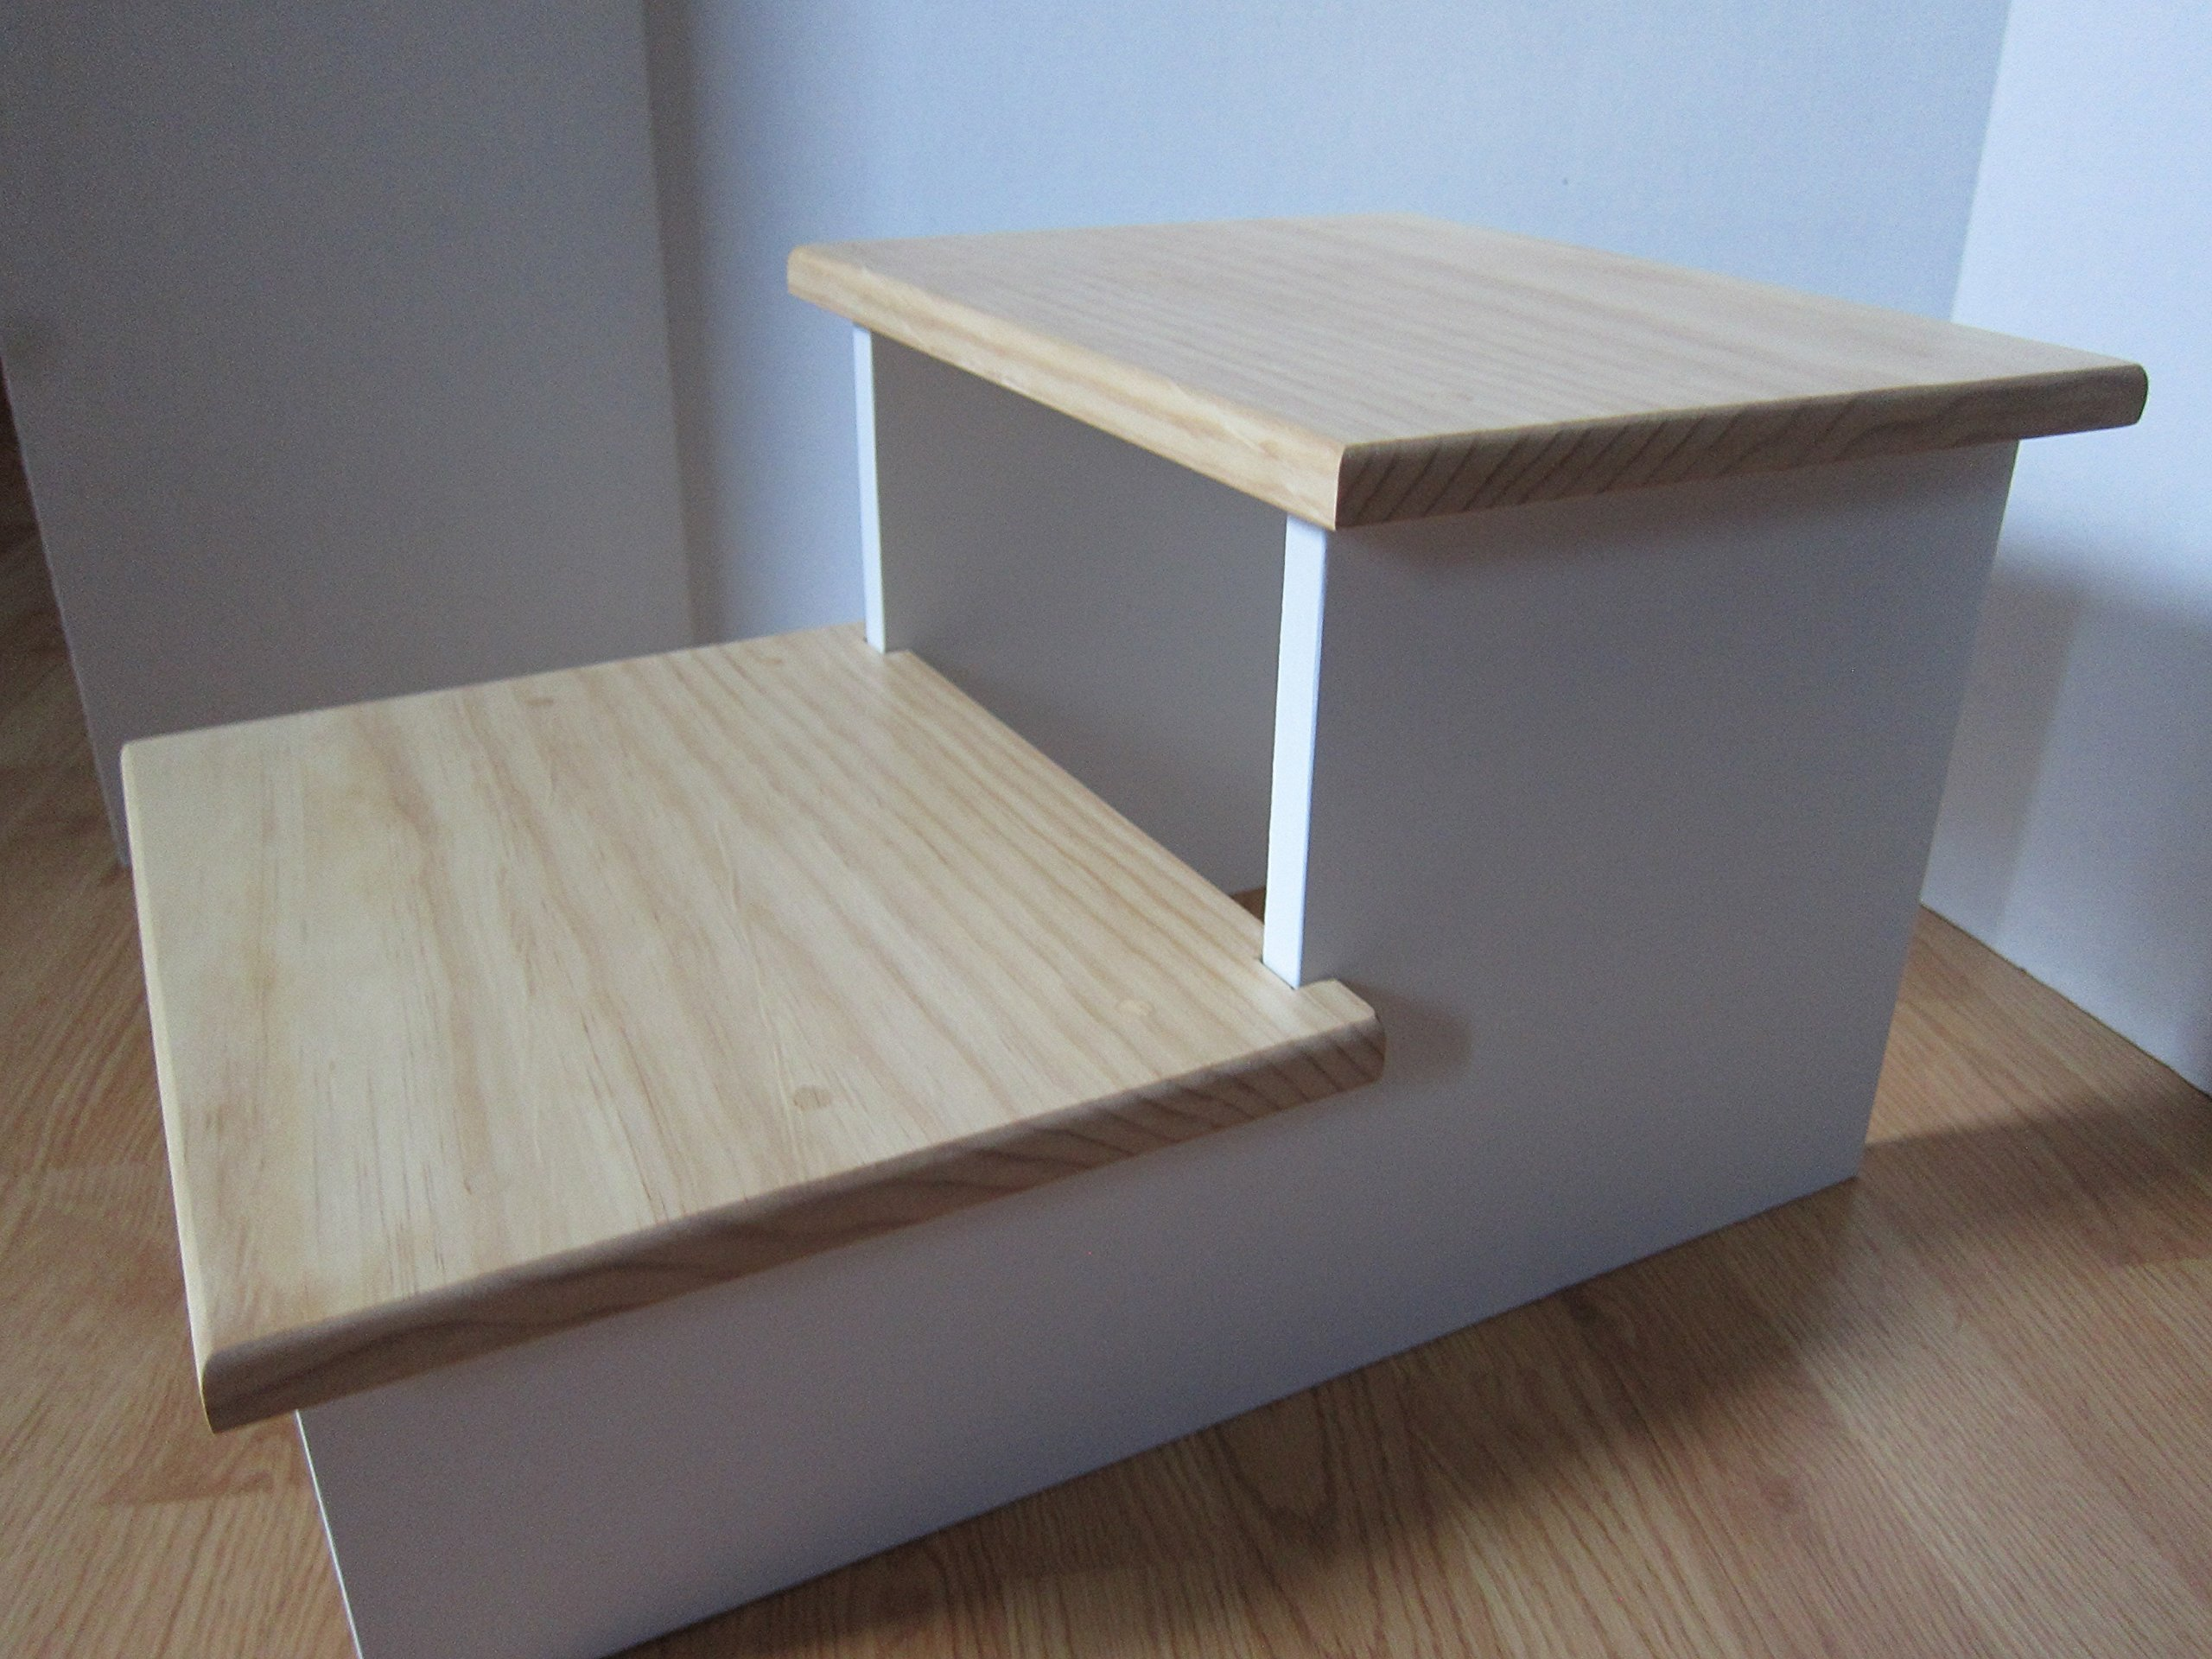 Large Pet Stairs - 18'' Tall, 2 Step